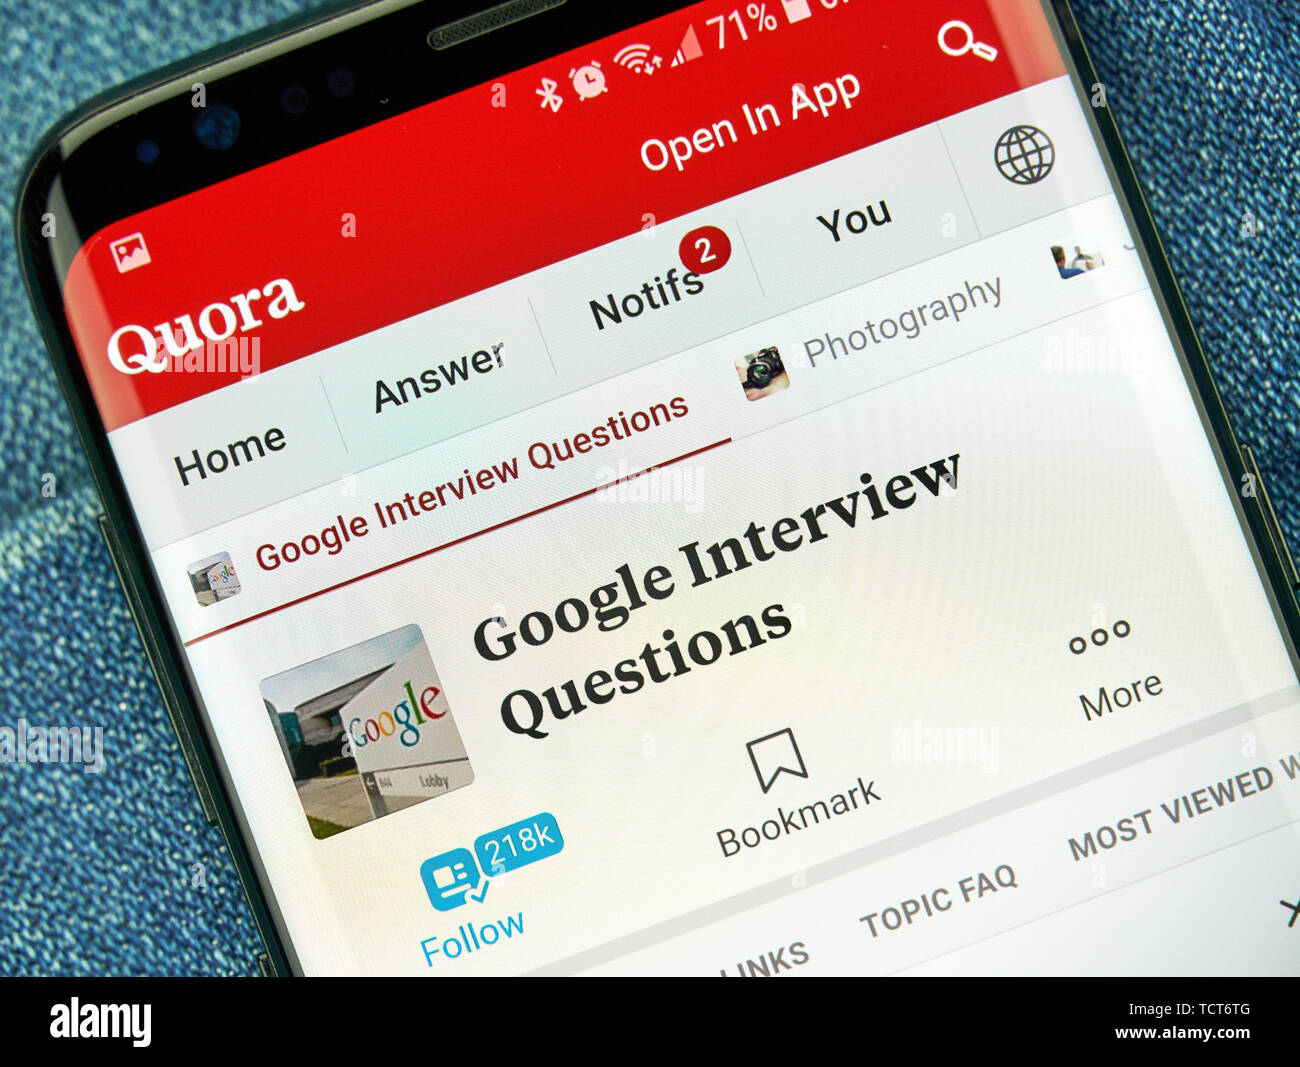 Answer App Stock Photos & Answer App Stock Images - Alamy